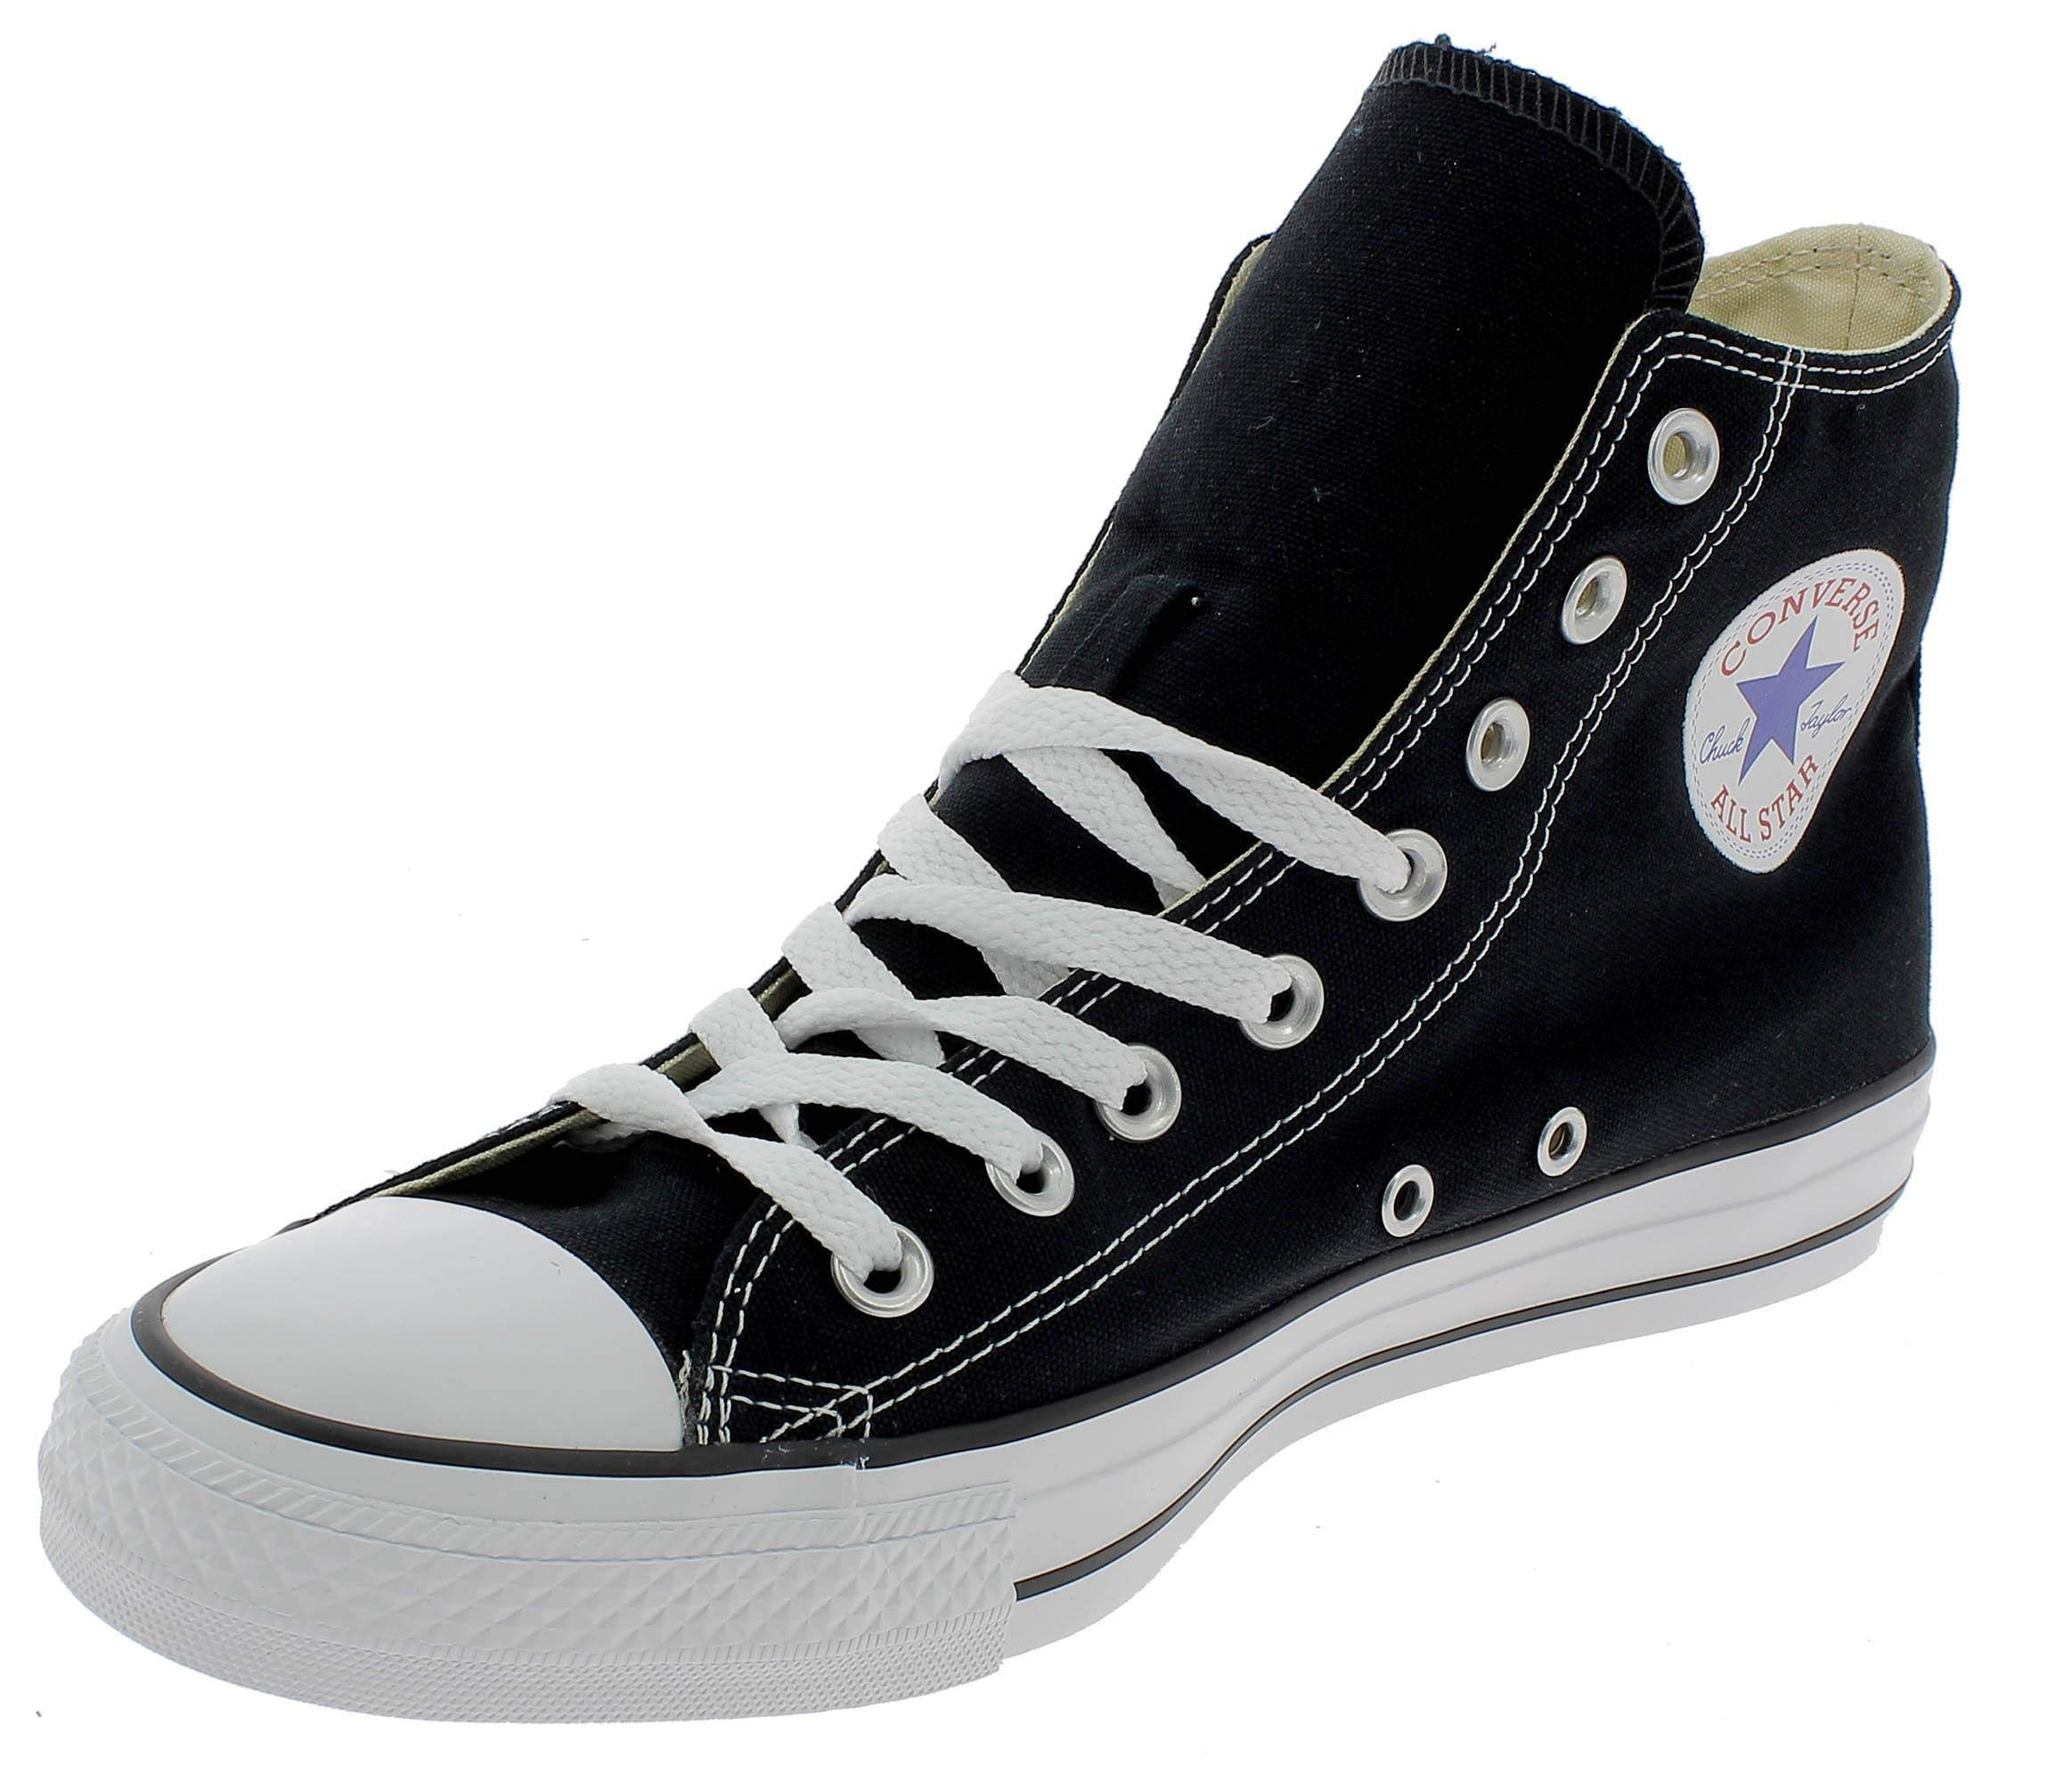 Chuck Taylor All Star Canvas High Top, Black, 4 M US